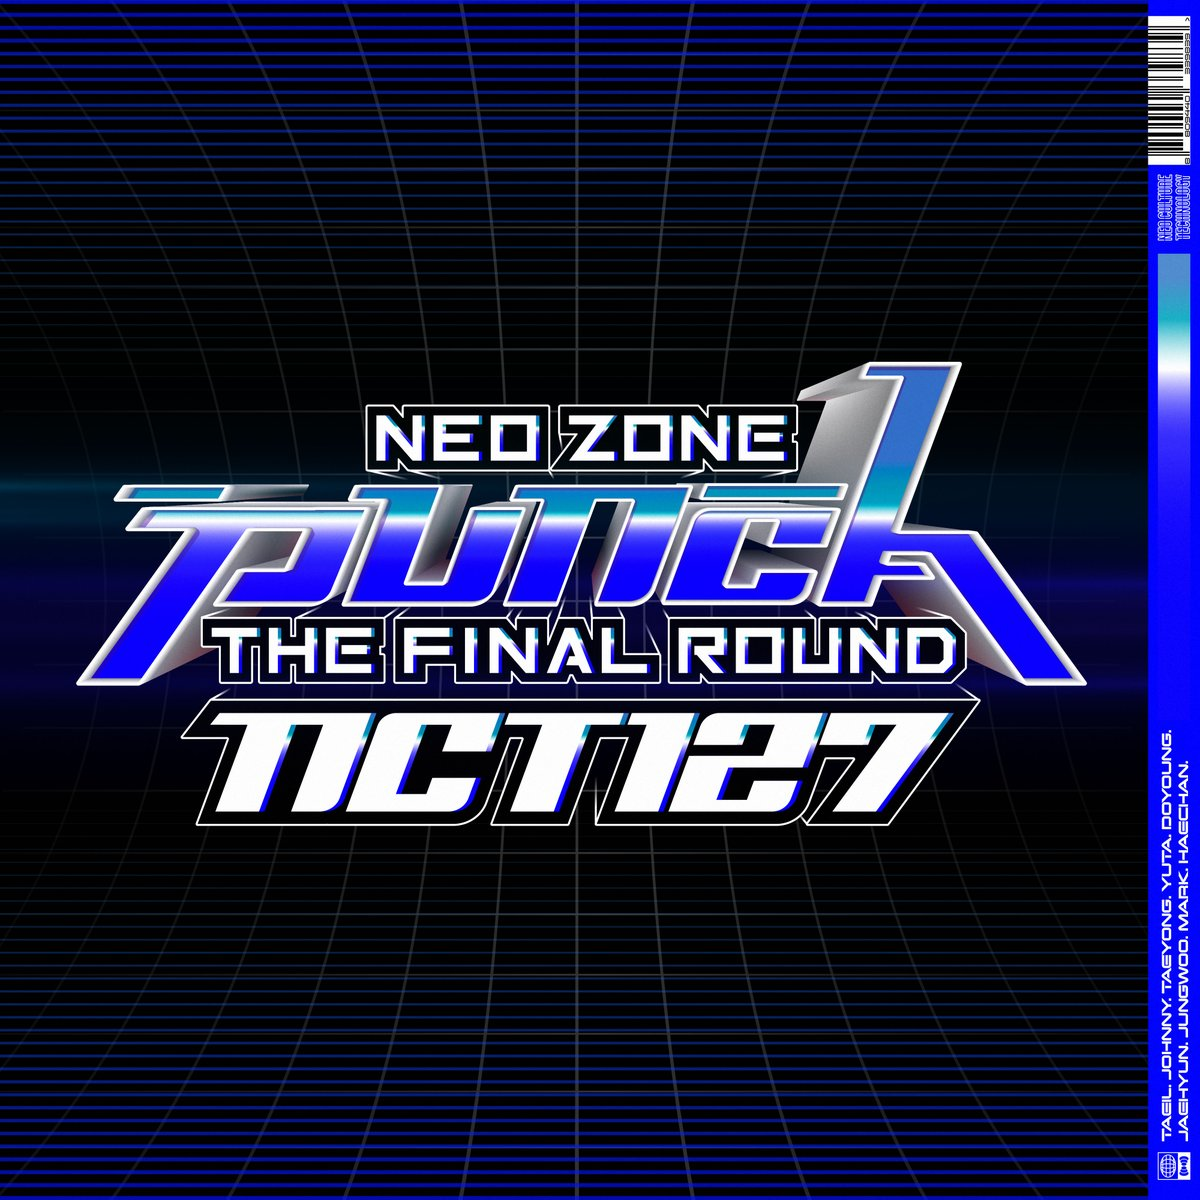 NCT 127's 2nd Album Repackage 'NCT #127 Neo Zone: The Final Round' is finally out!! Get your album and listen to the full track from the link below  https://nct127.lnk.to/neozonedeluxeTW  Music Video ➫ 2020 05 20 0AM (KST) #NCT127 #Punch #NCT127_Punch #NeoZone_TheFinalRoundpic.twitter.com/8bGZ2PN97j